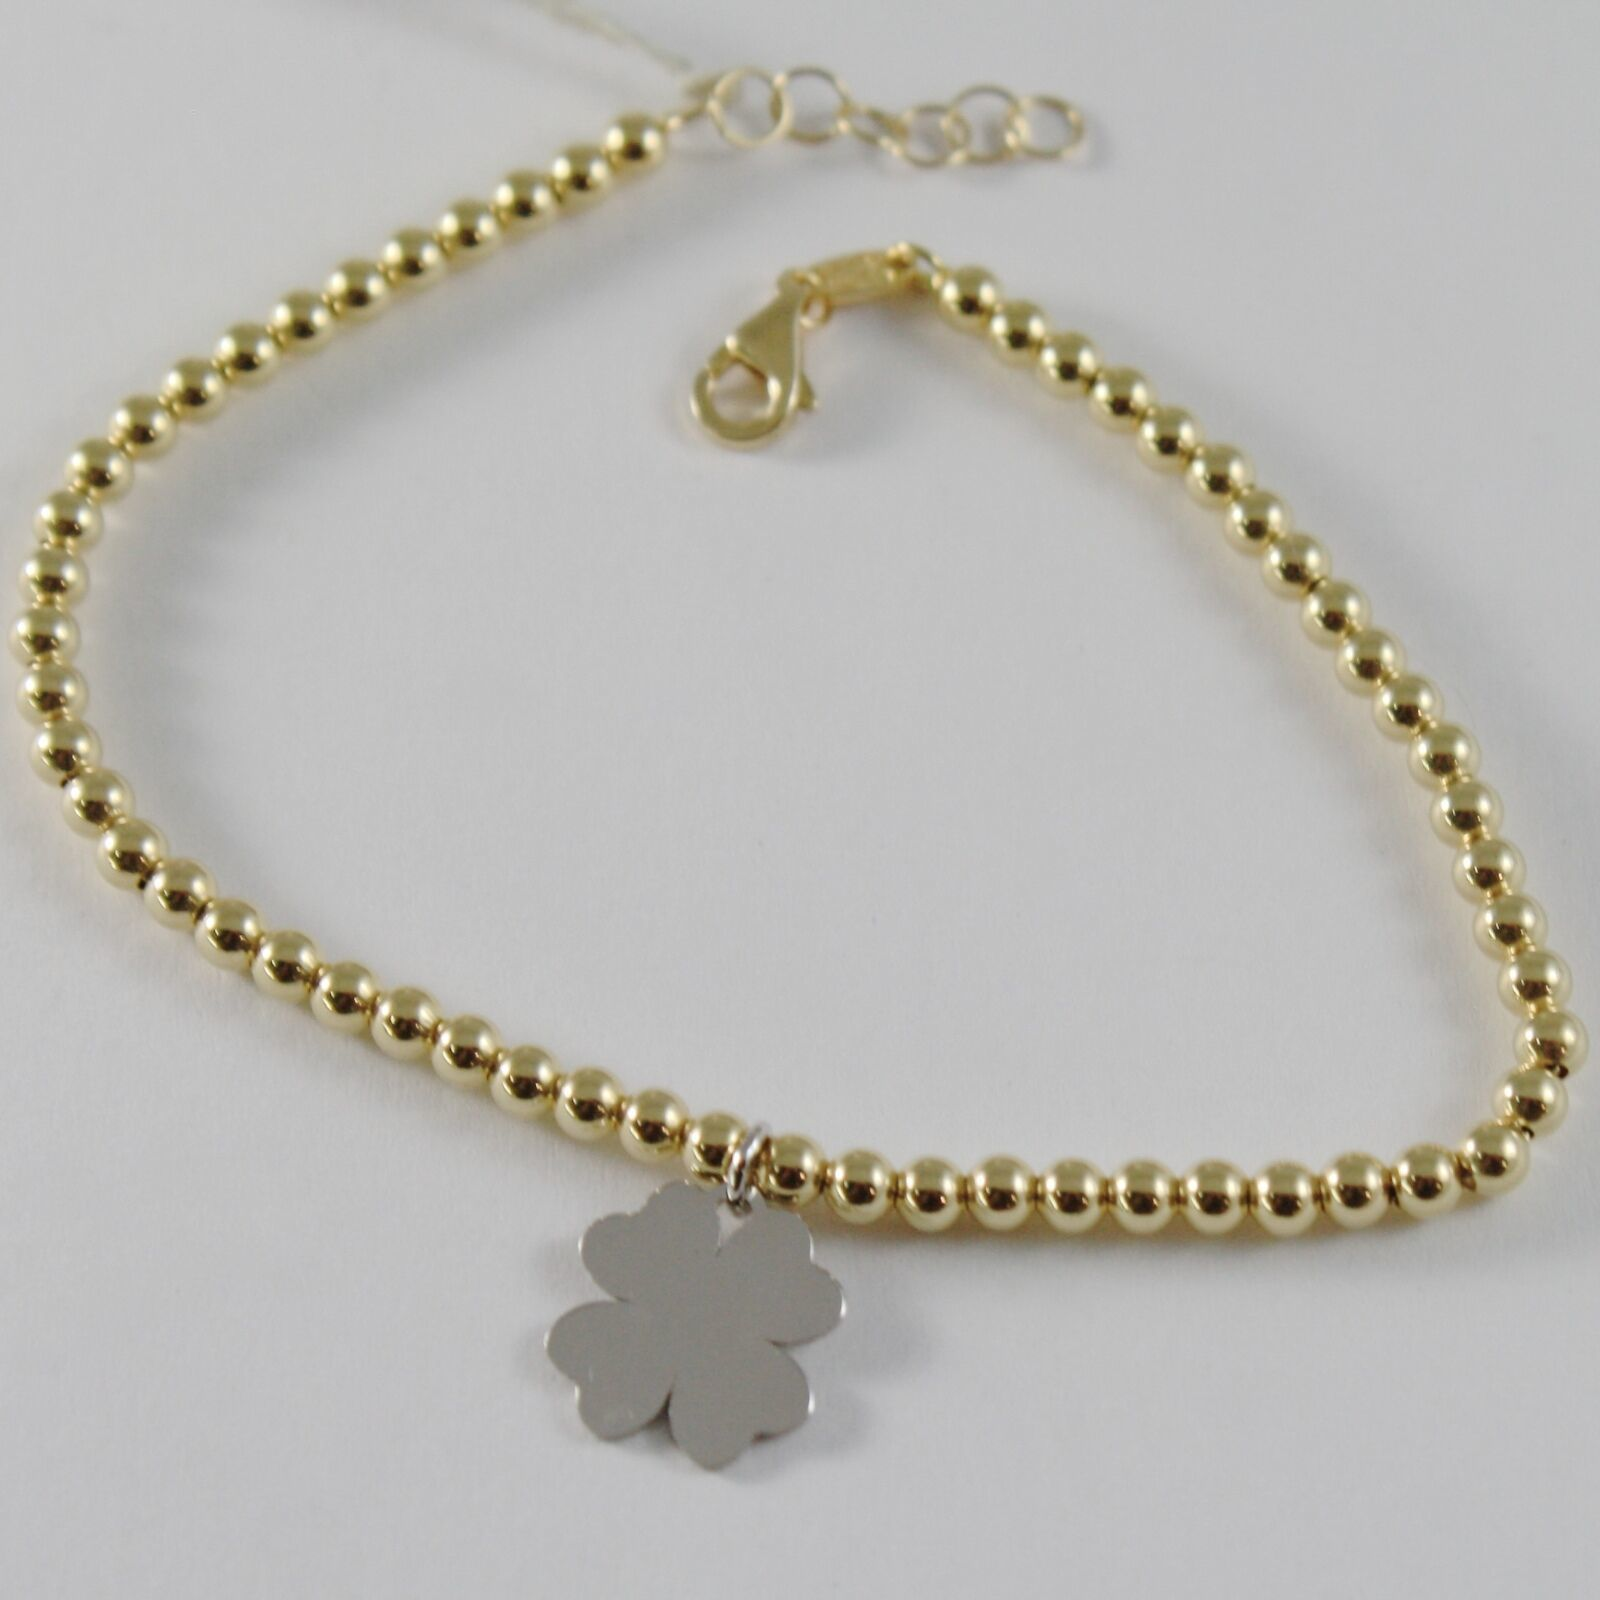 18k YELLOW WHITE GOLD BRACELET SMOOTH BRIGHT BALLS BALL & CLOVER MADE IN ITALY